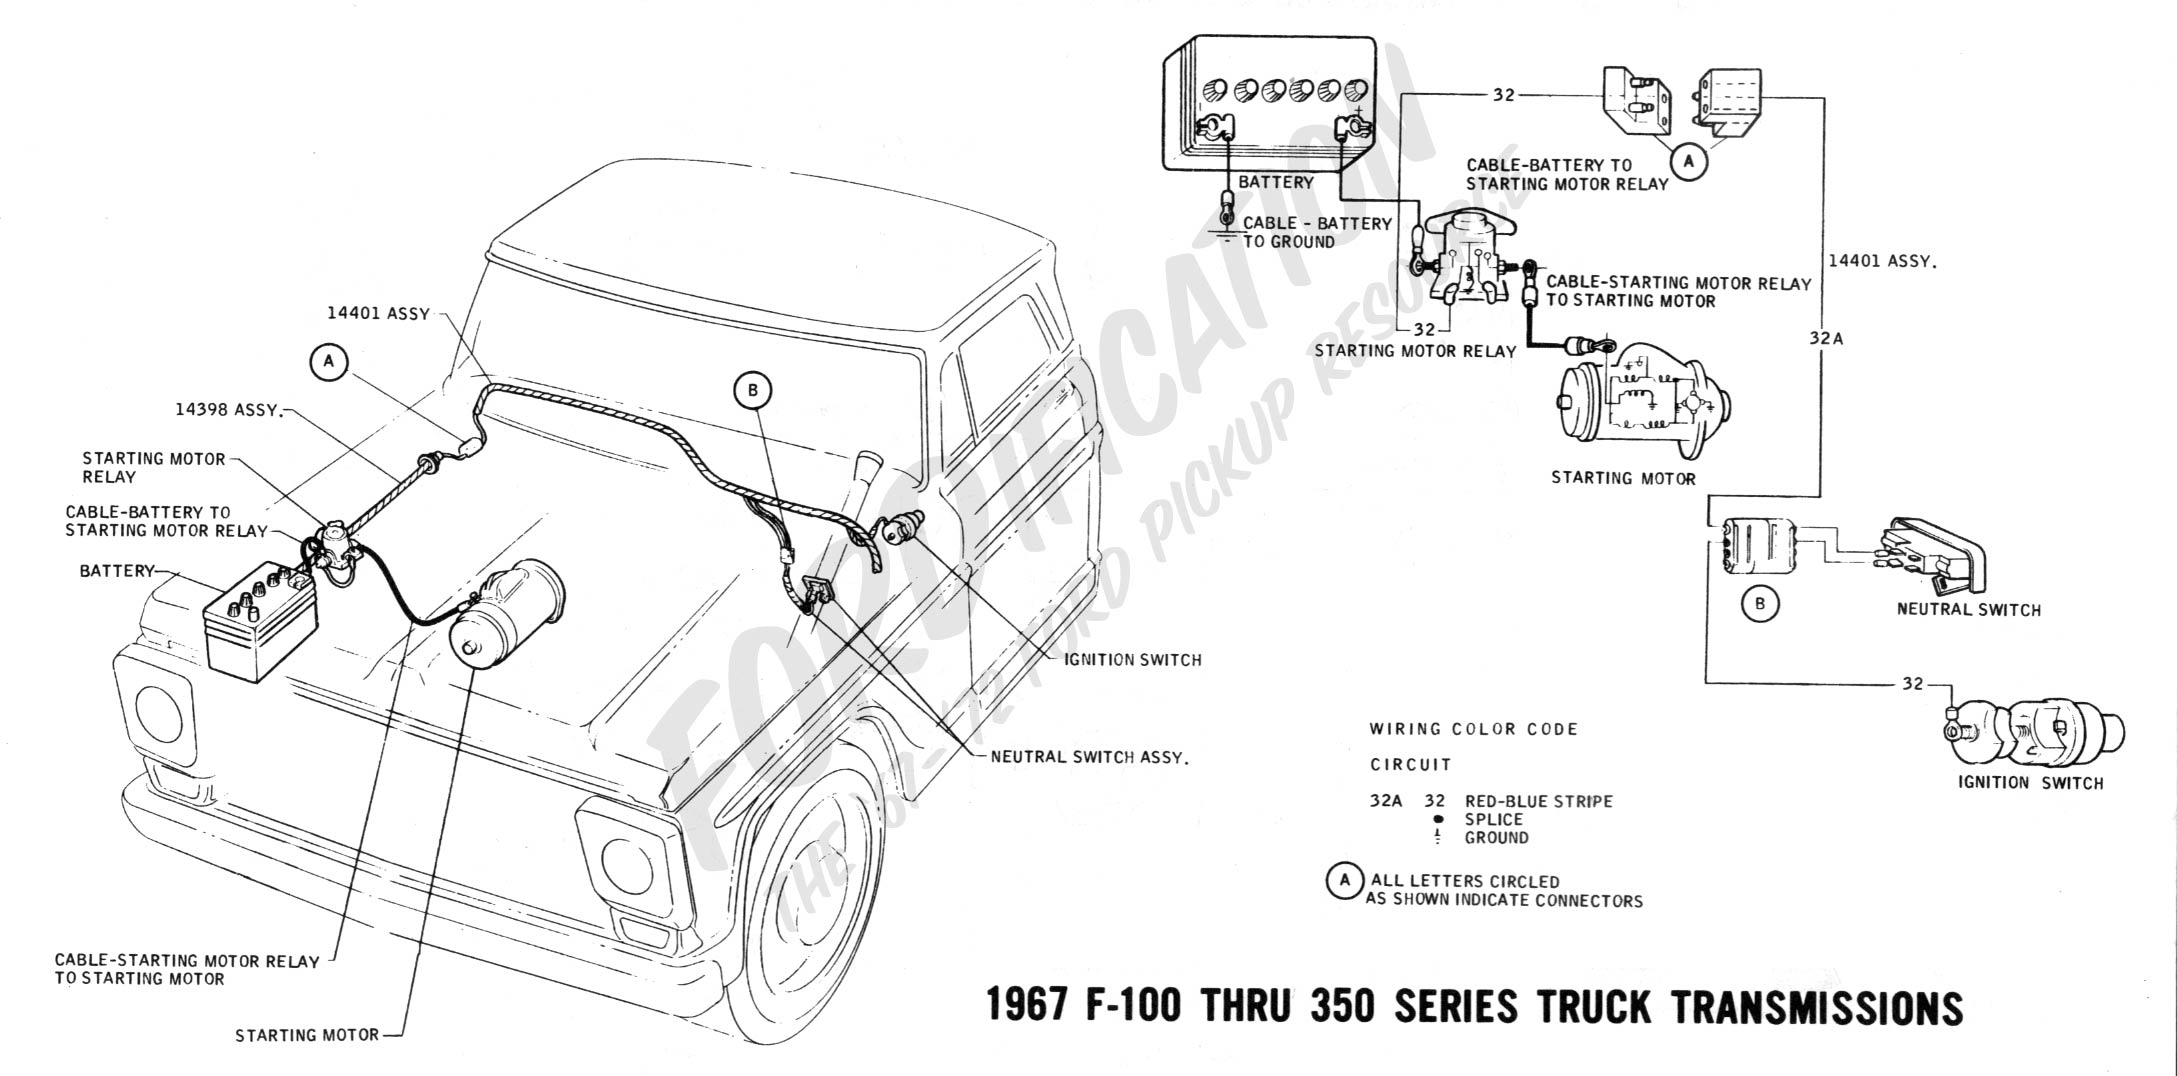 Ford F8000 Parts Diagram in addition 1993 Accord Ex 4dr Under Dash Fuse Diagram 3244340 also 2006 Taurus Engine Coolant Sensor besides Installation besides F600 Ford Truck Wiring Diagrams. on l9000 engine diagram